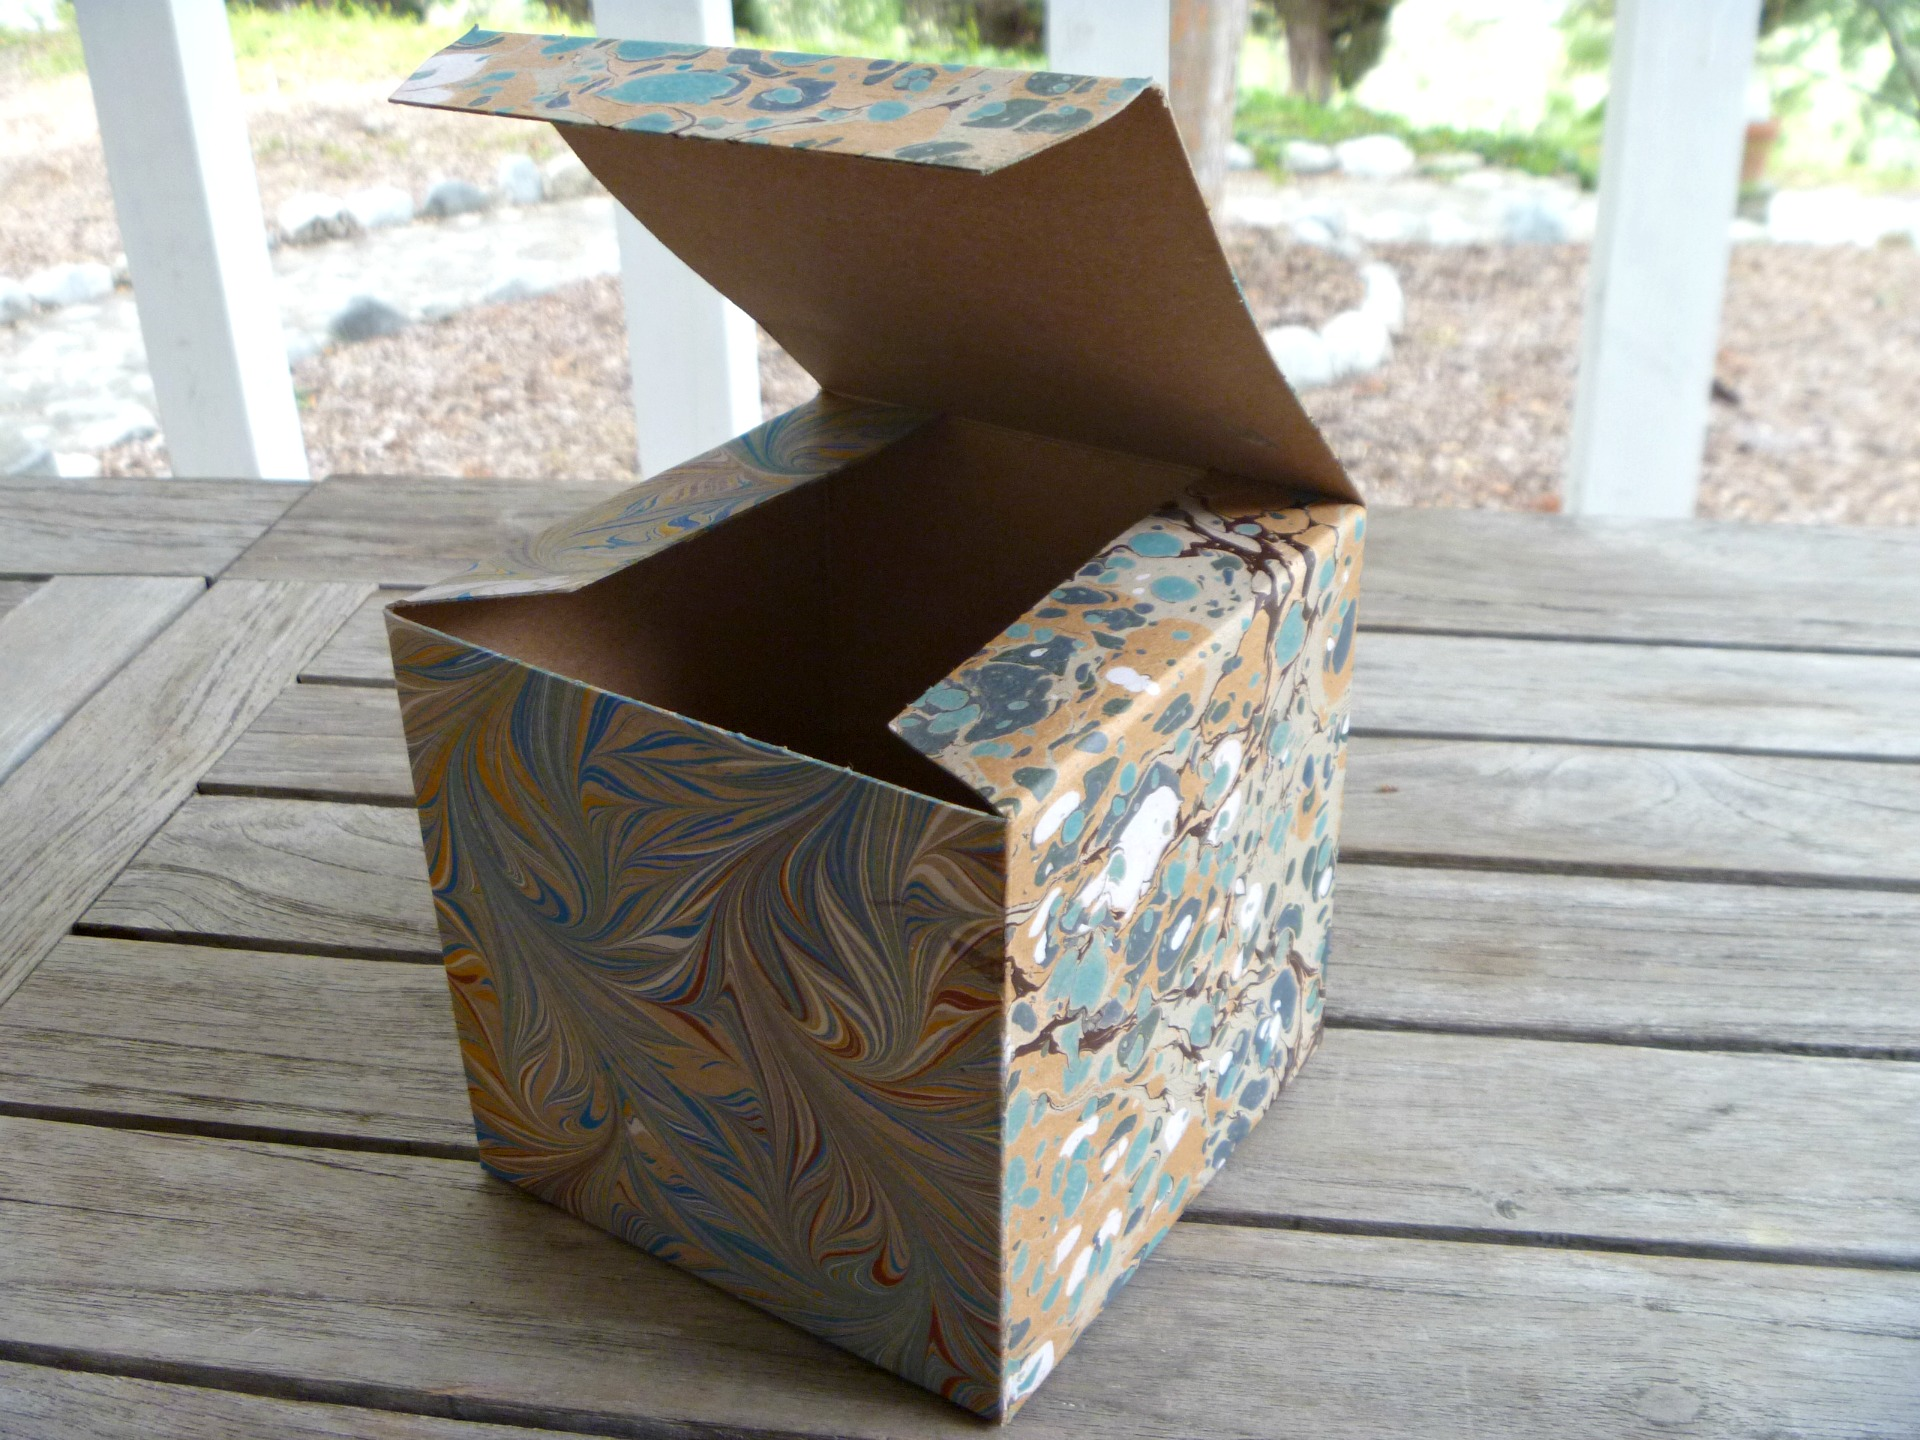 FinishedBoxP1110776.JPG